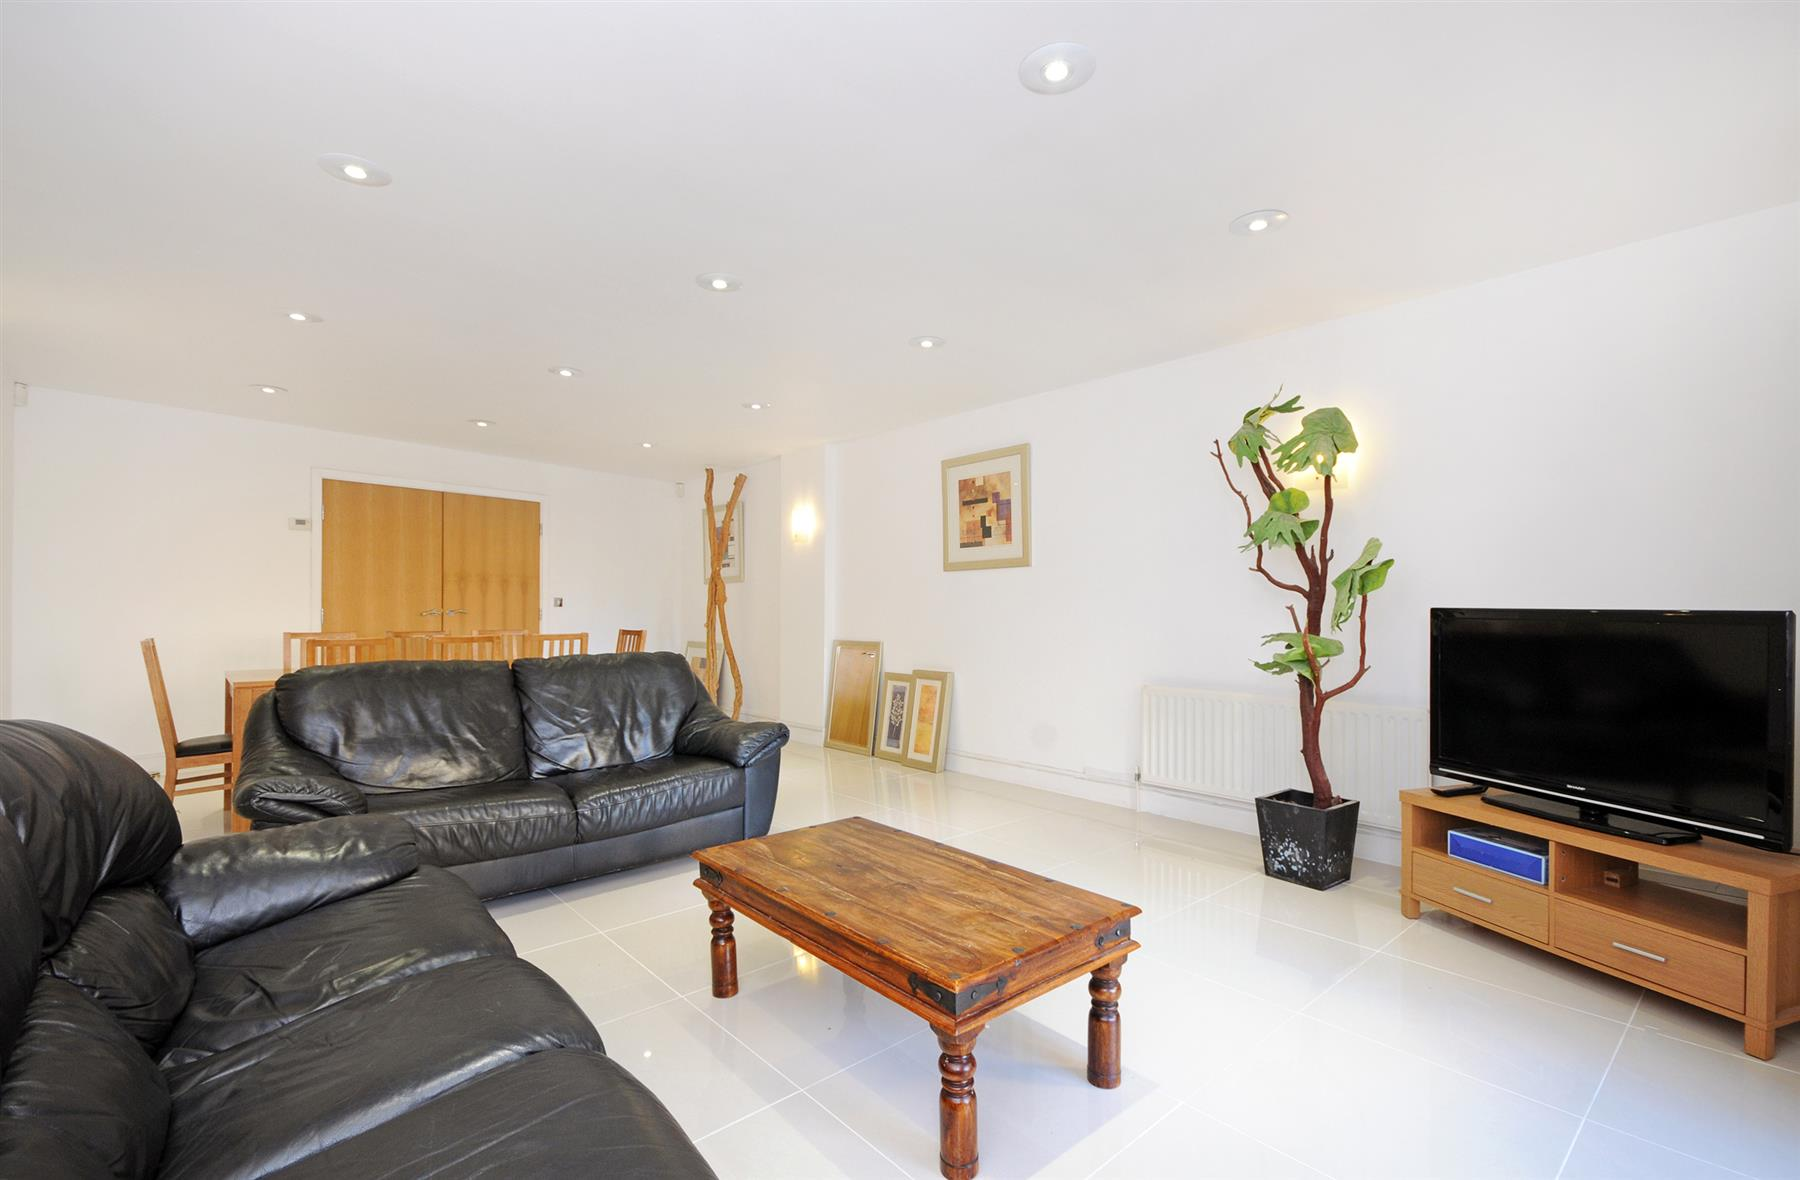 Properties for sale 3 bedroom apartment richbourne court london w1 plaza estates for Three bedroom apartments london